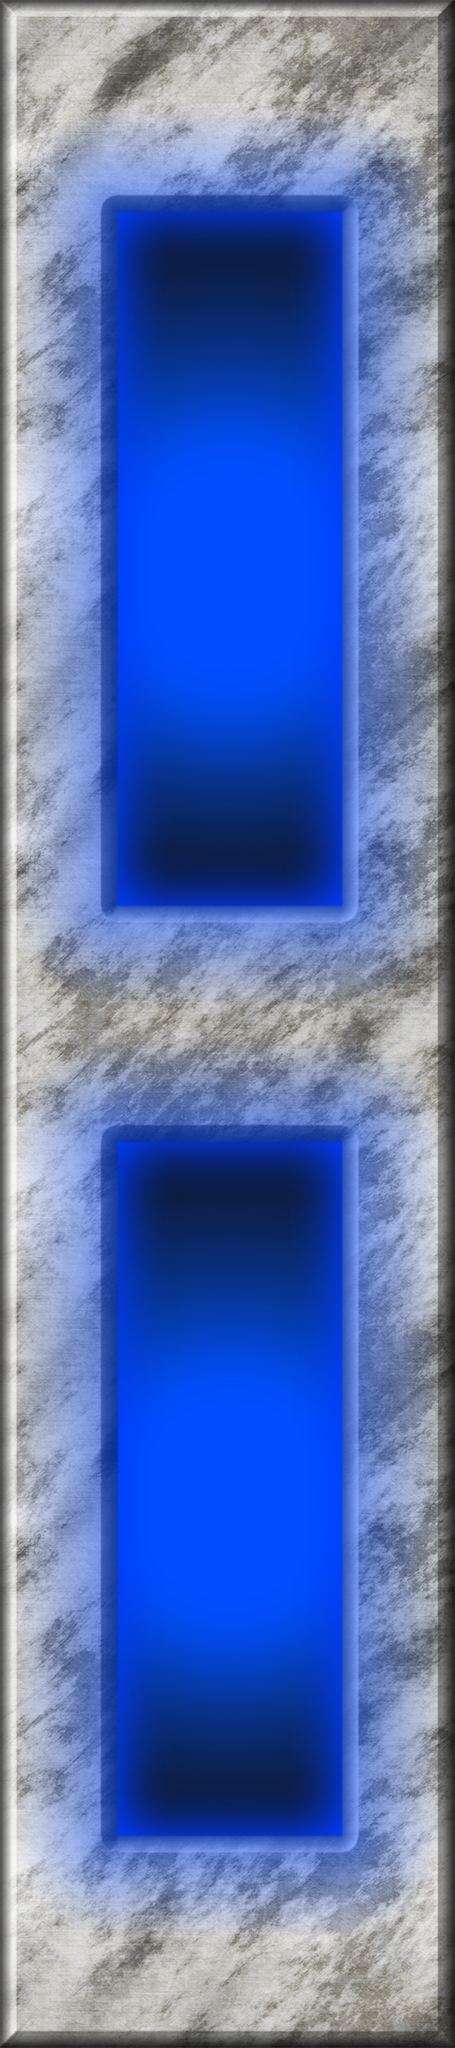 Blue Lights 02 by Hoover1979